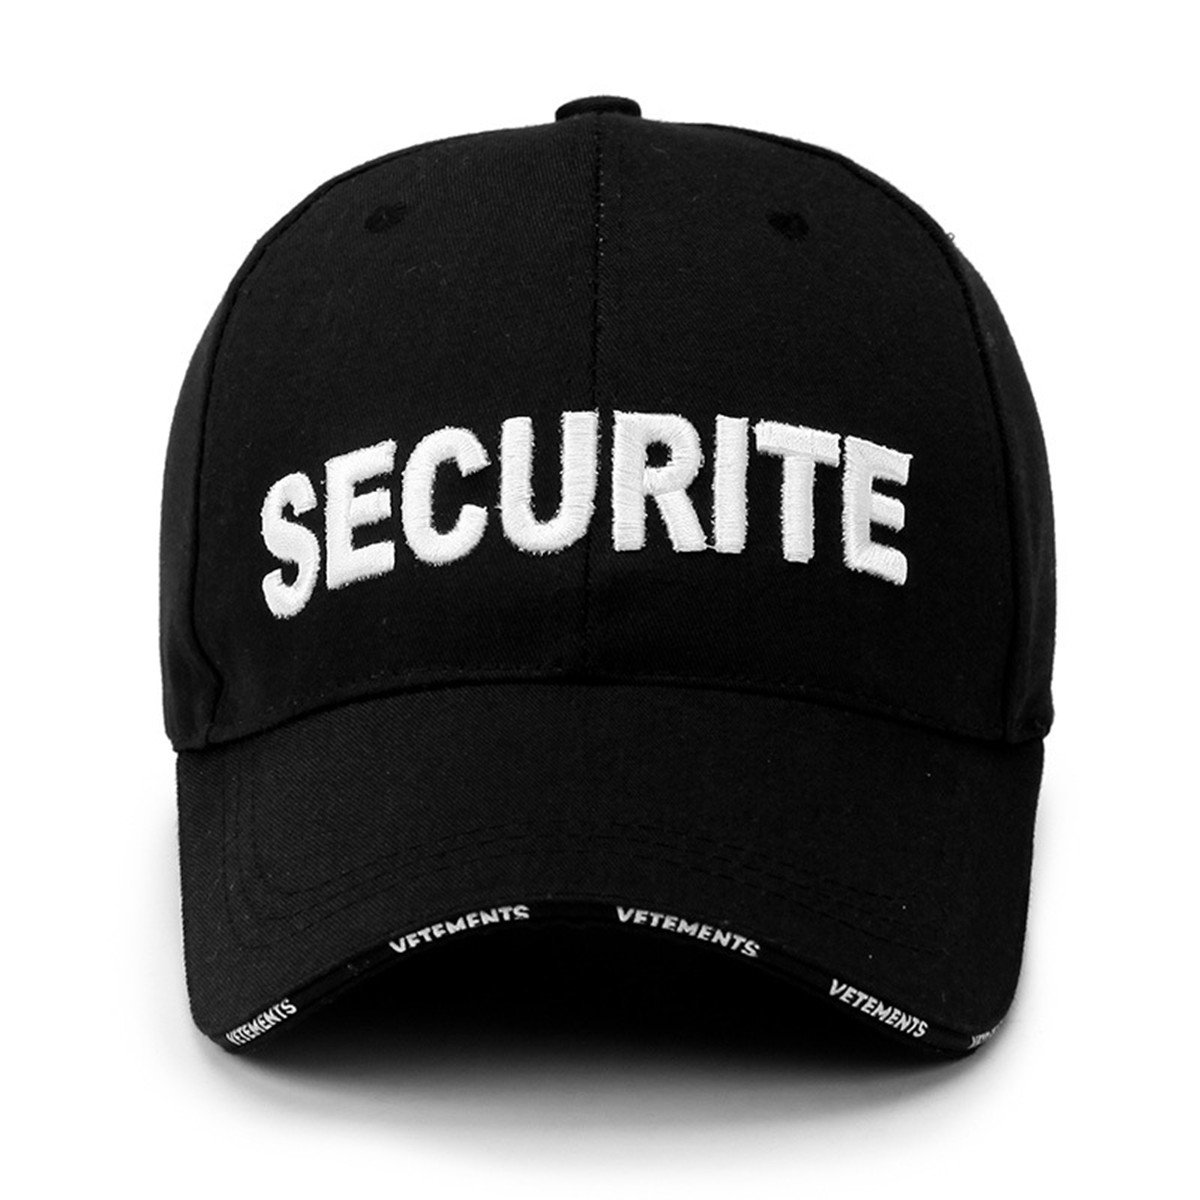 06e6d13f2cd Ezyforu Baseball Cap Adults SECURITE Letter Embroidery Adjustable Cotton  Trucker Hat for Men and Women (Black) at Amazon Women s Clothing store